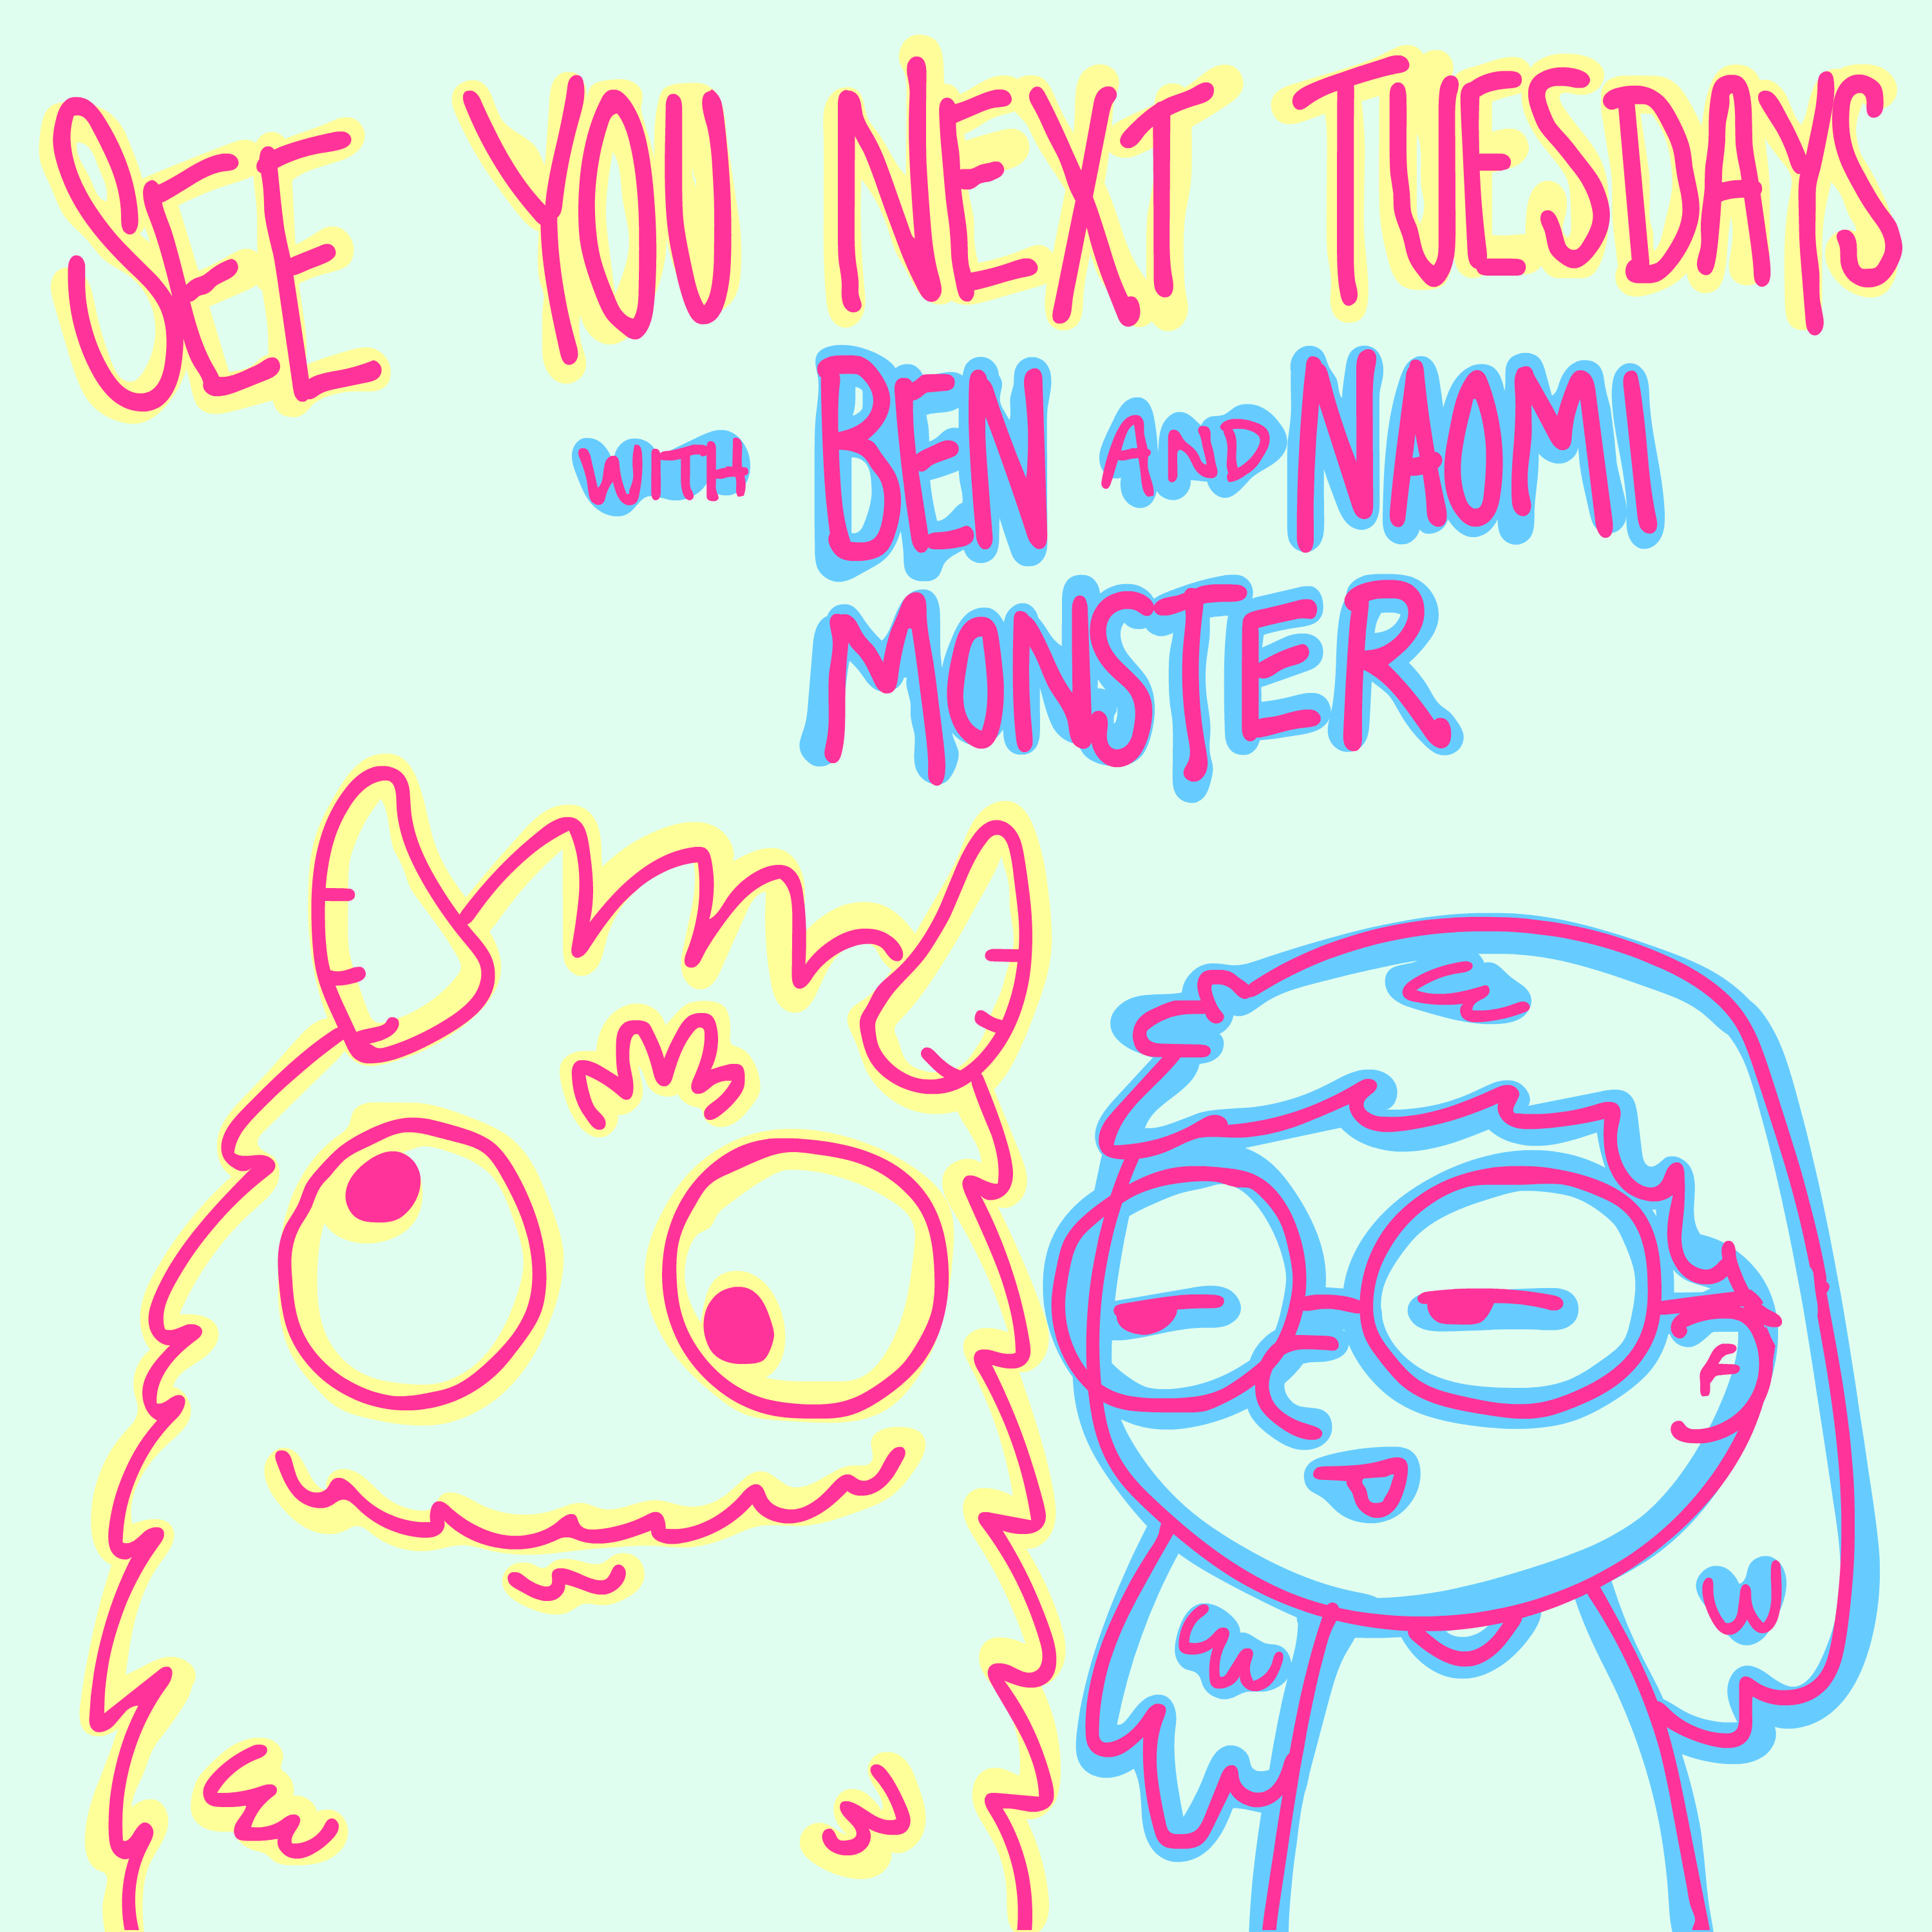 SEE YOU NEXT TUESDAYS with BEN MONSTER (10/19/20)